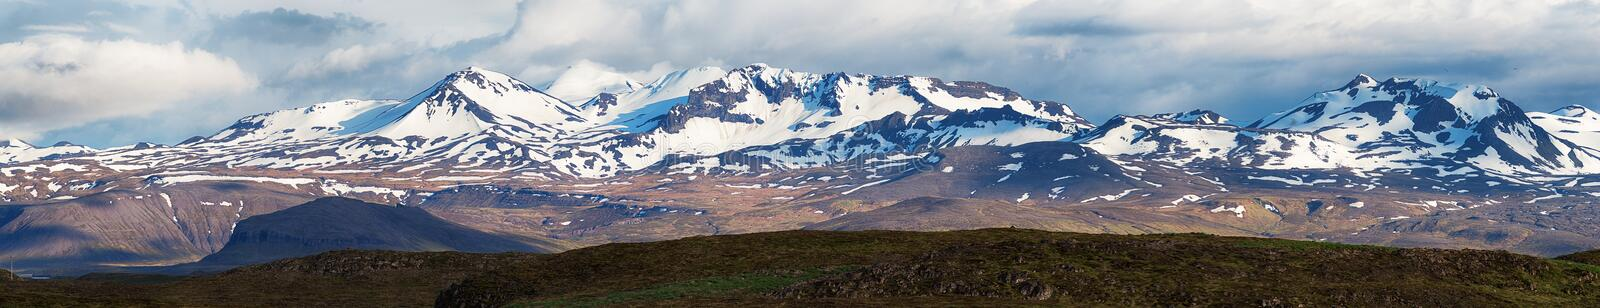 Mountain landscape in Iceland, panorama. Panoramic image of scenic snow clad mountains royalty free stock images